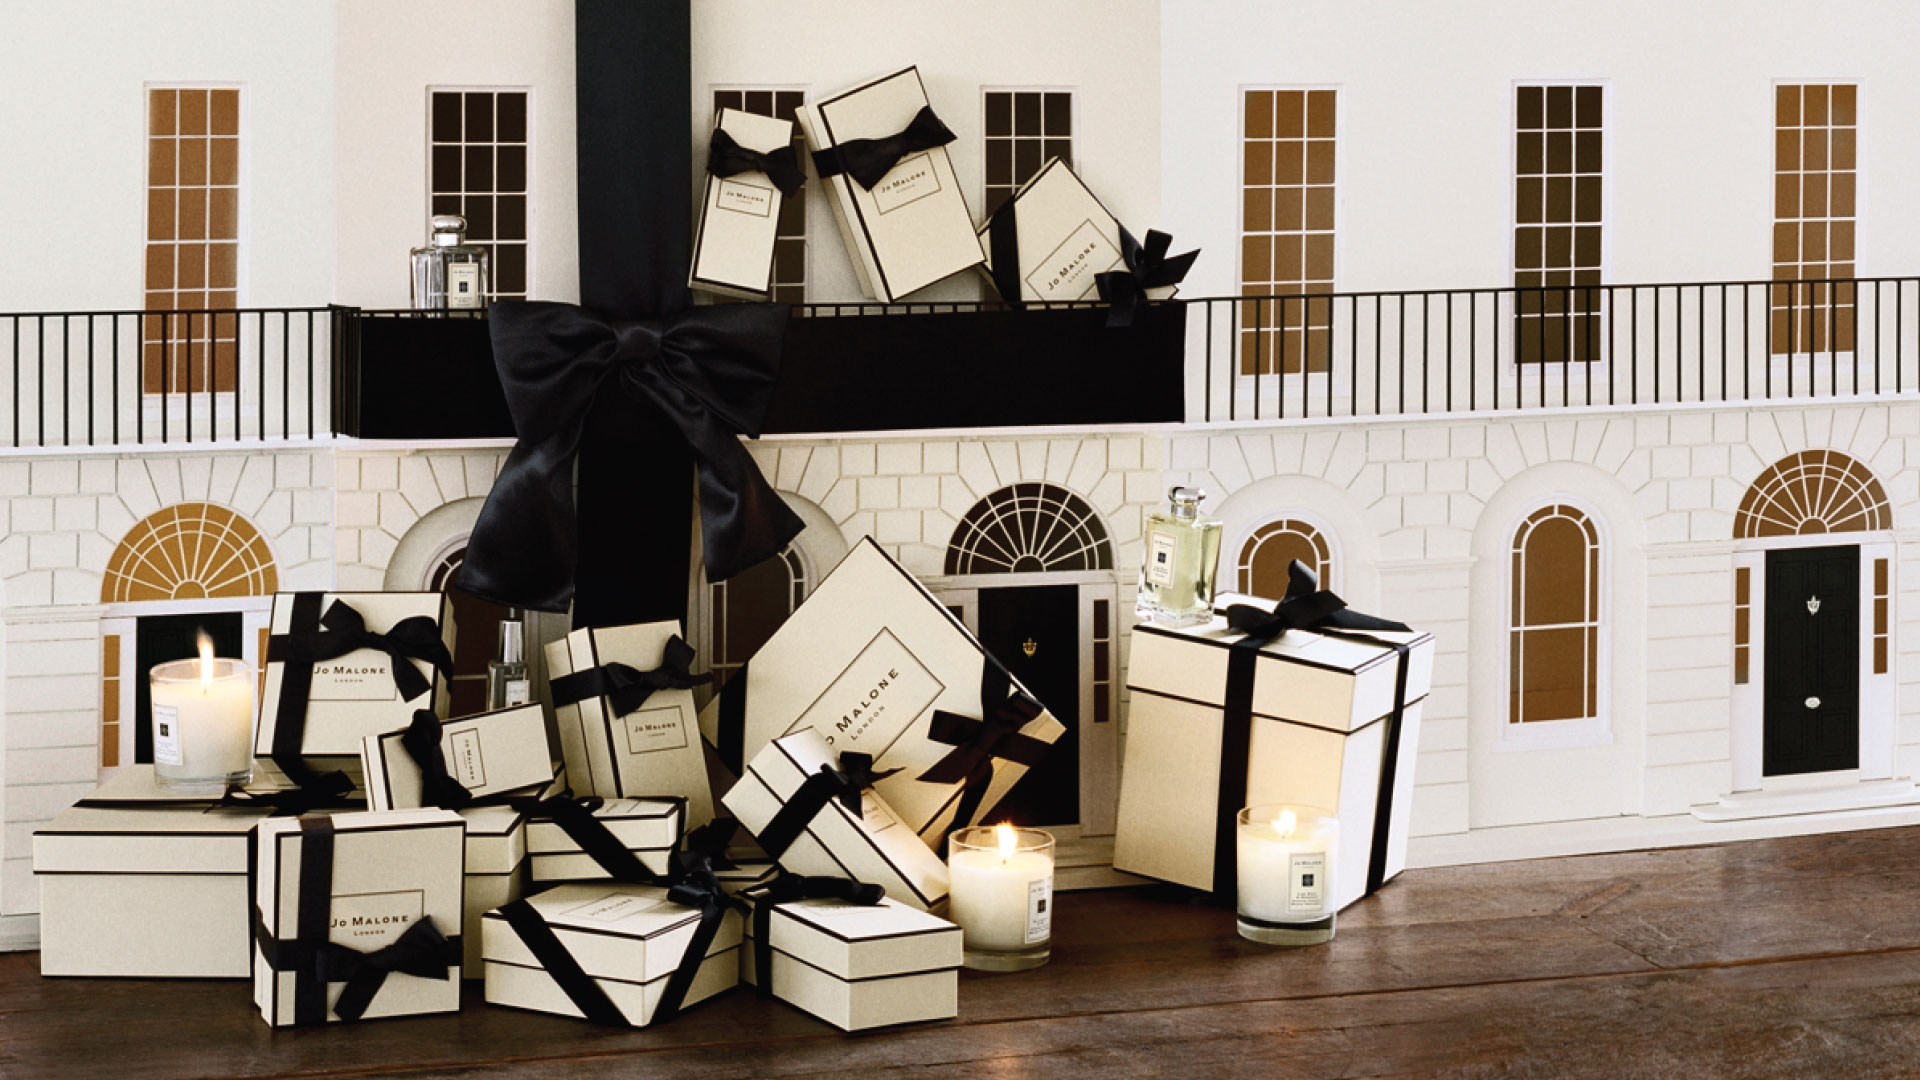 Jo Malone London main image gift boxes at Bicester Village